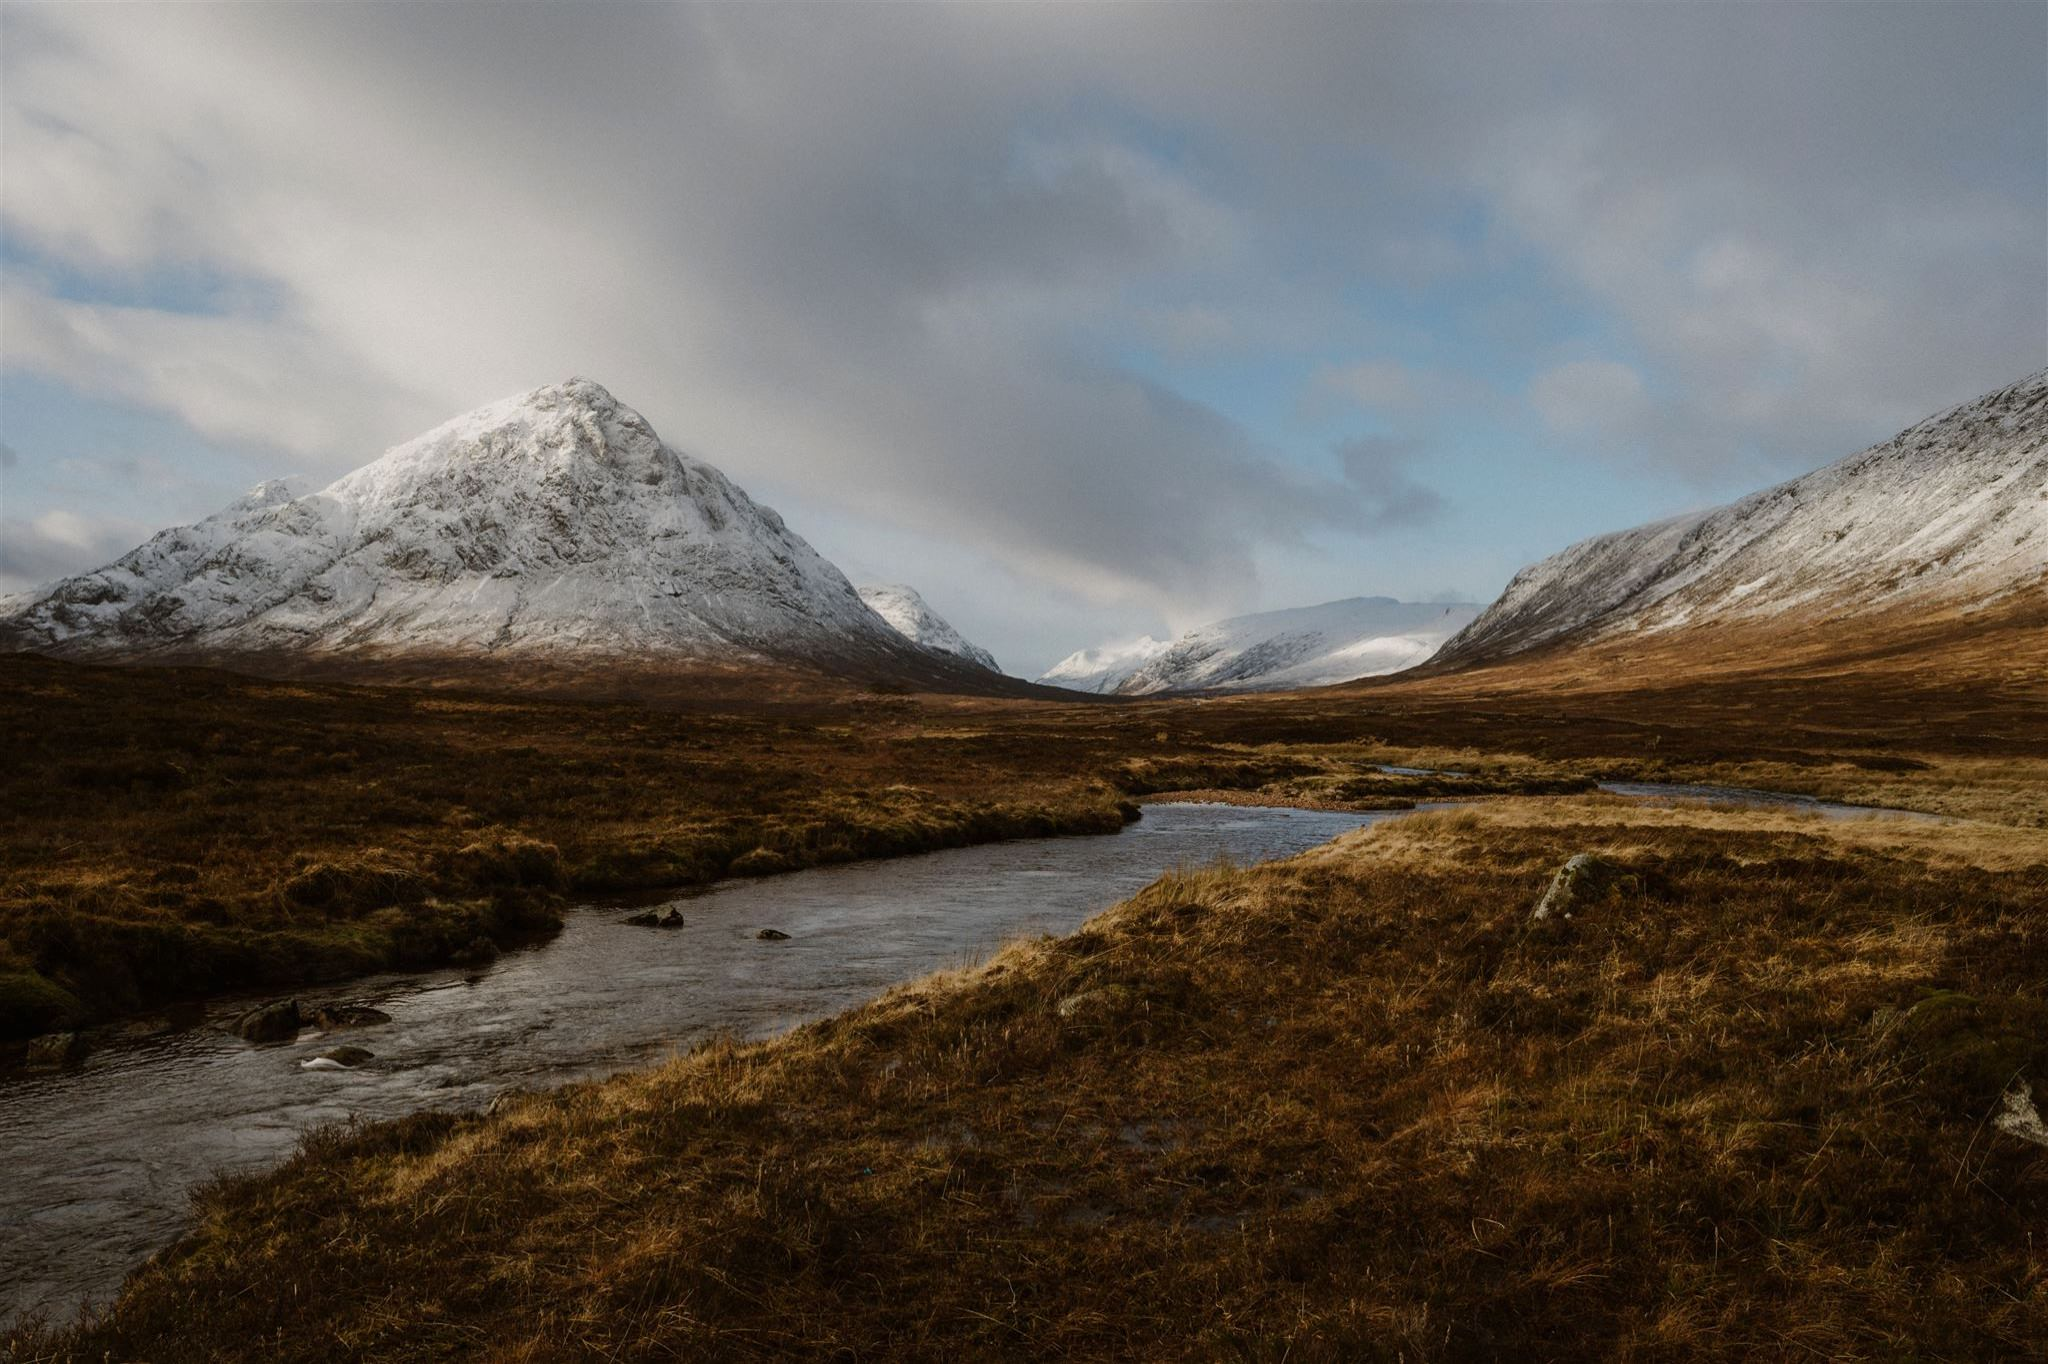 Mountain and river landscape in Glencoe in the Highlands of Scotland